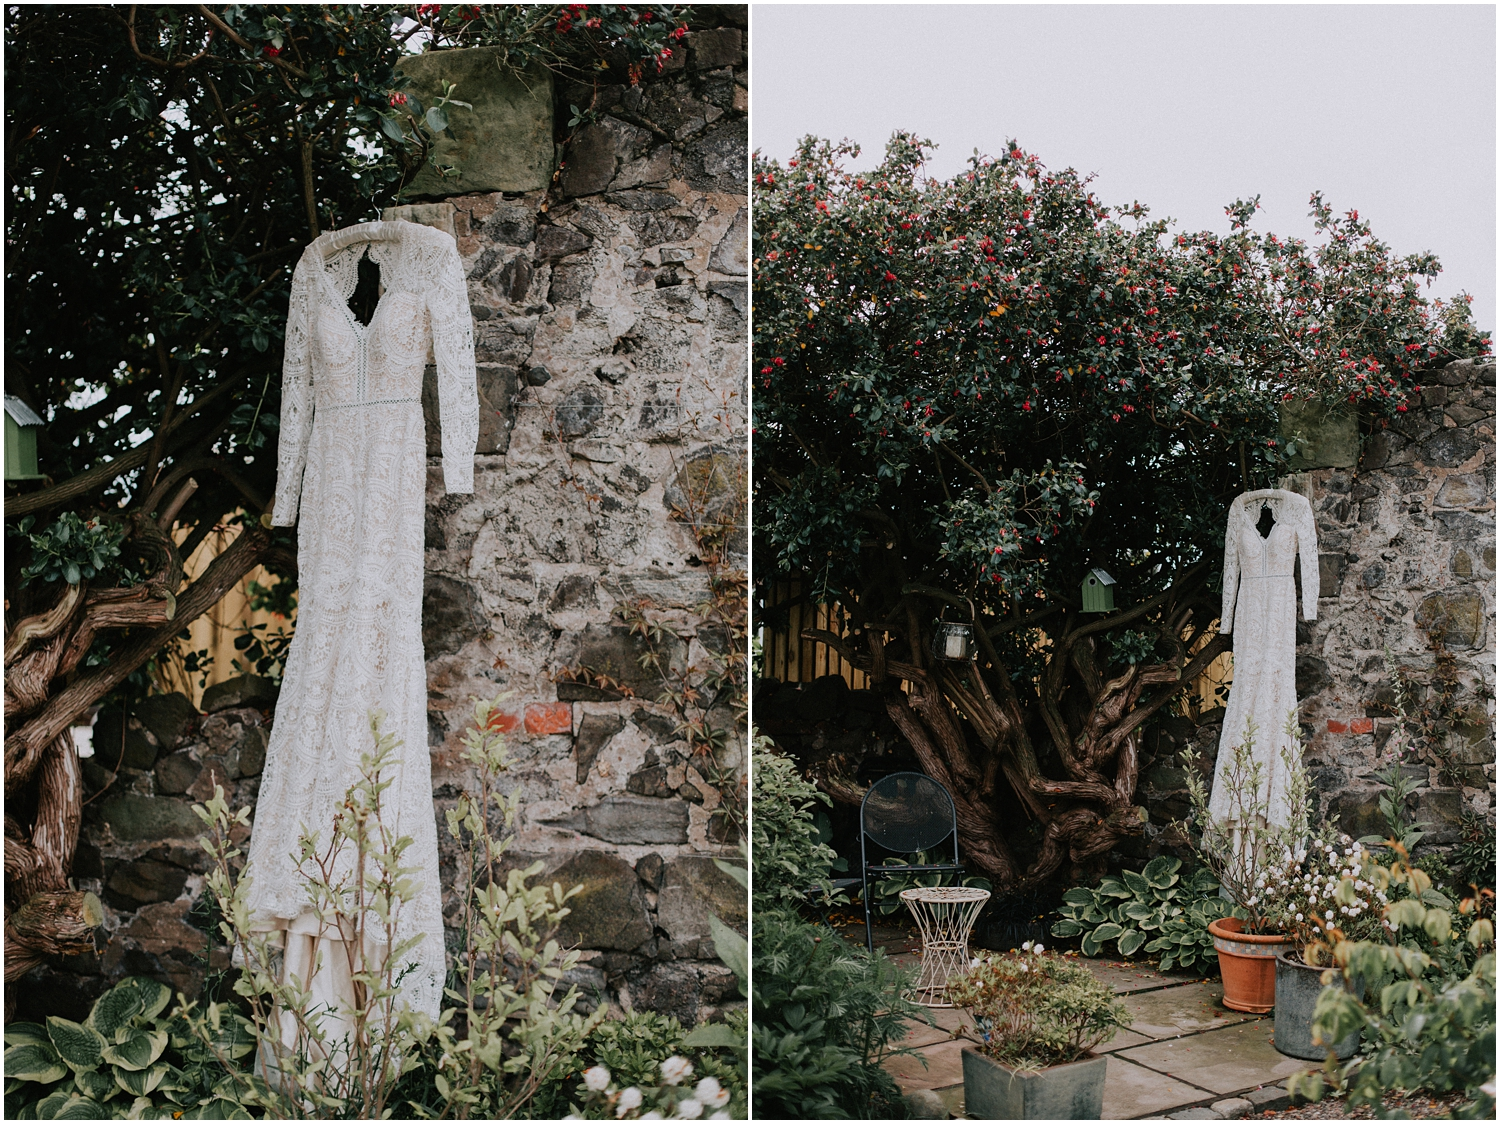 The boho style wedding dress is hang on in the Japanese garden in Dundee